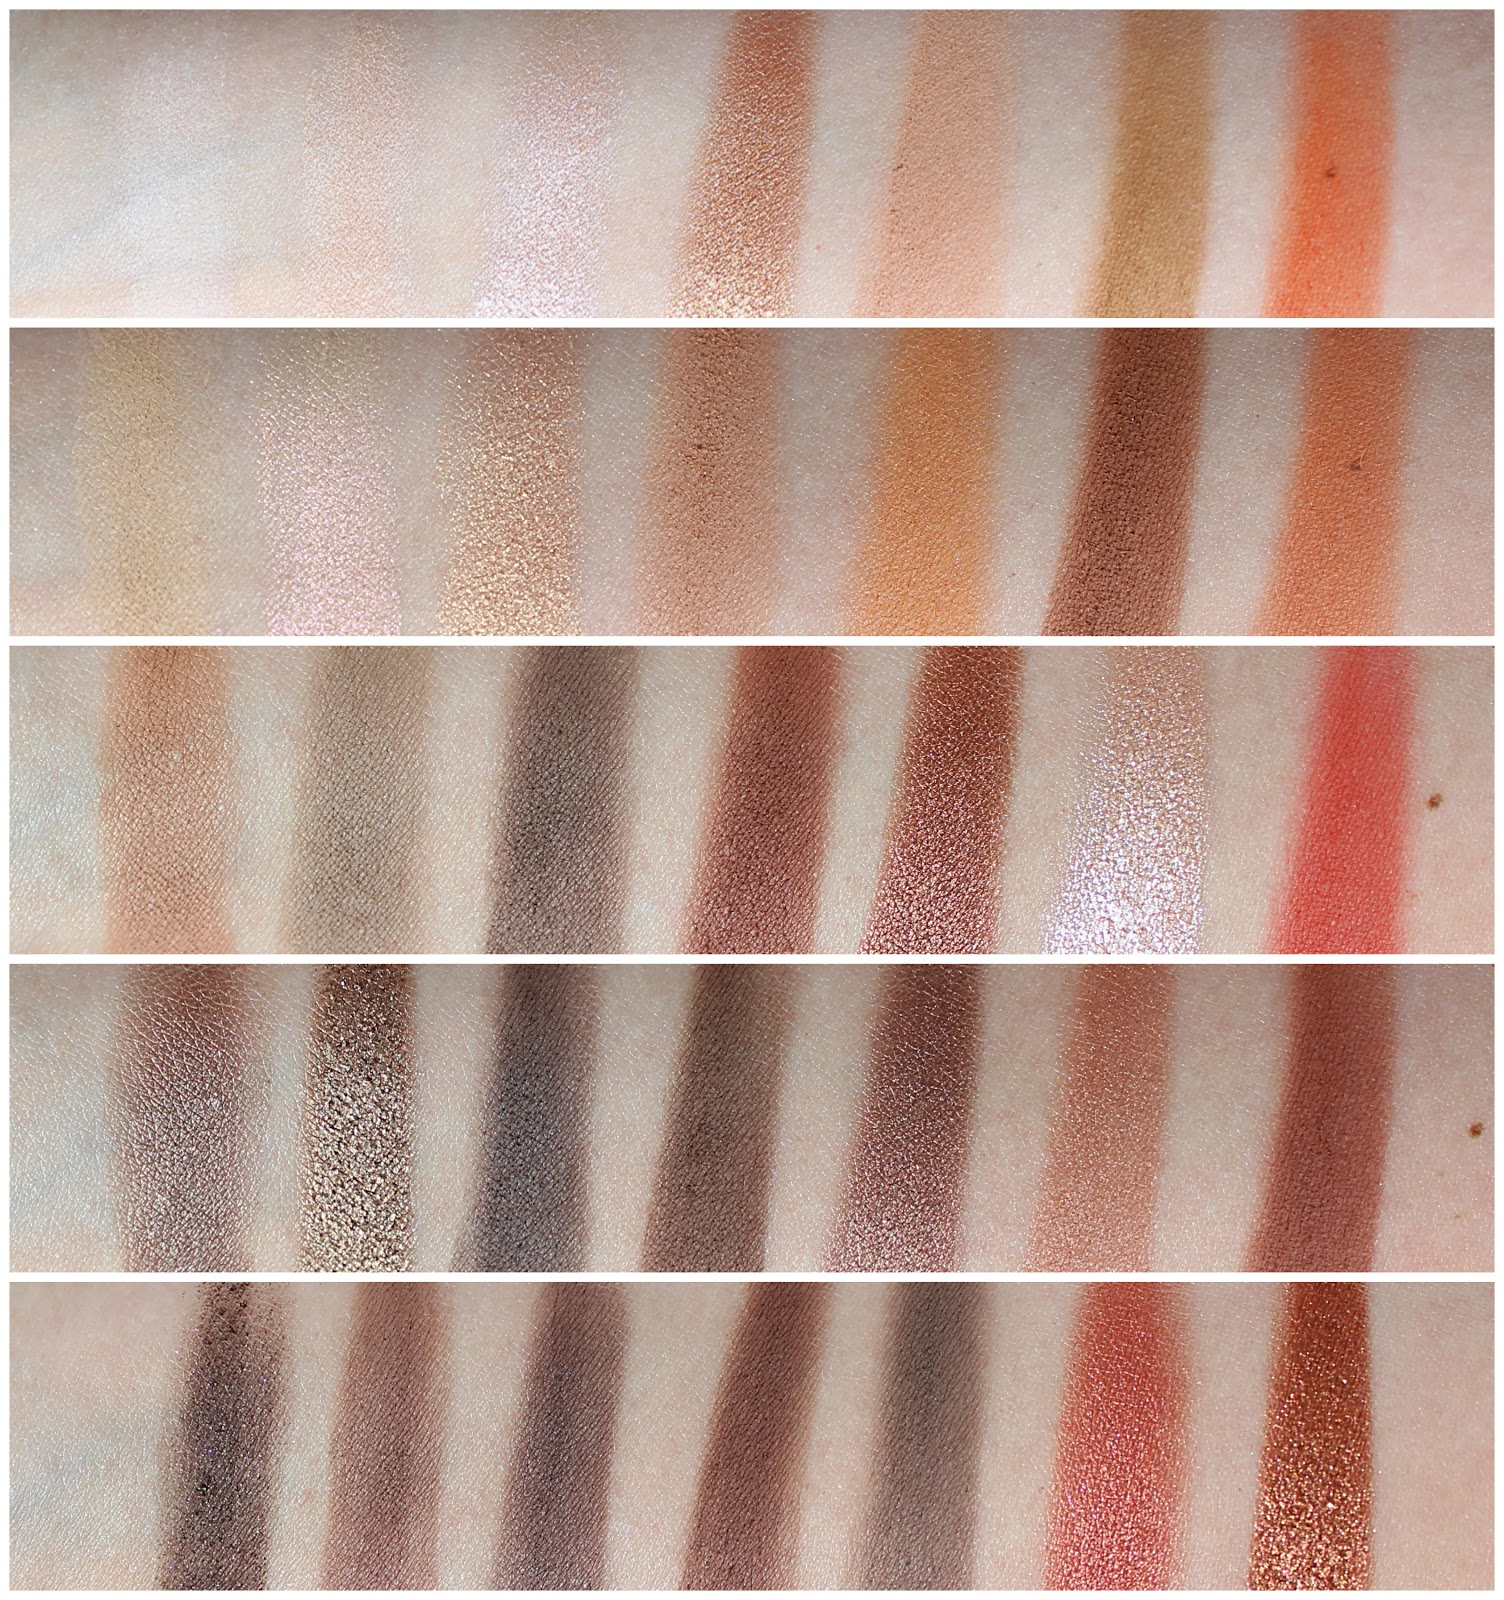 Morphe 35O Palette Review and Swatches